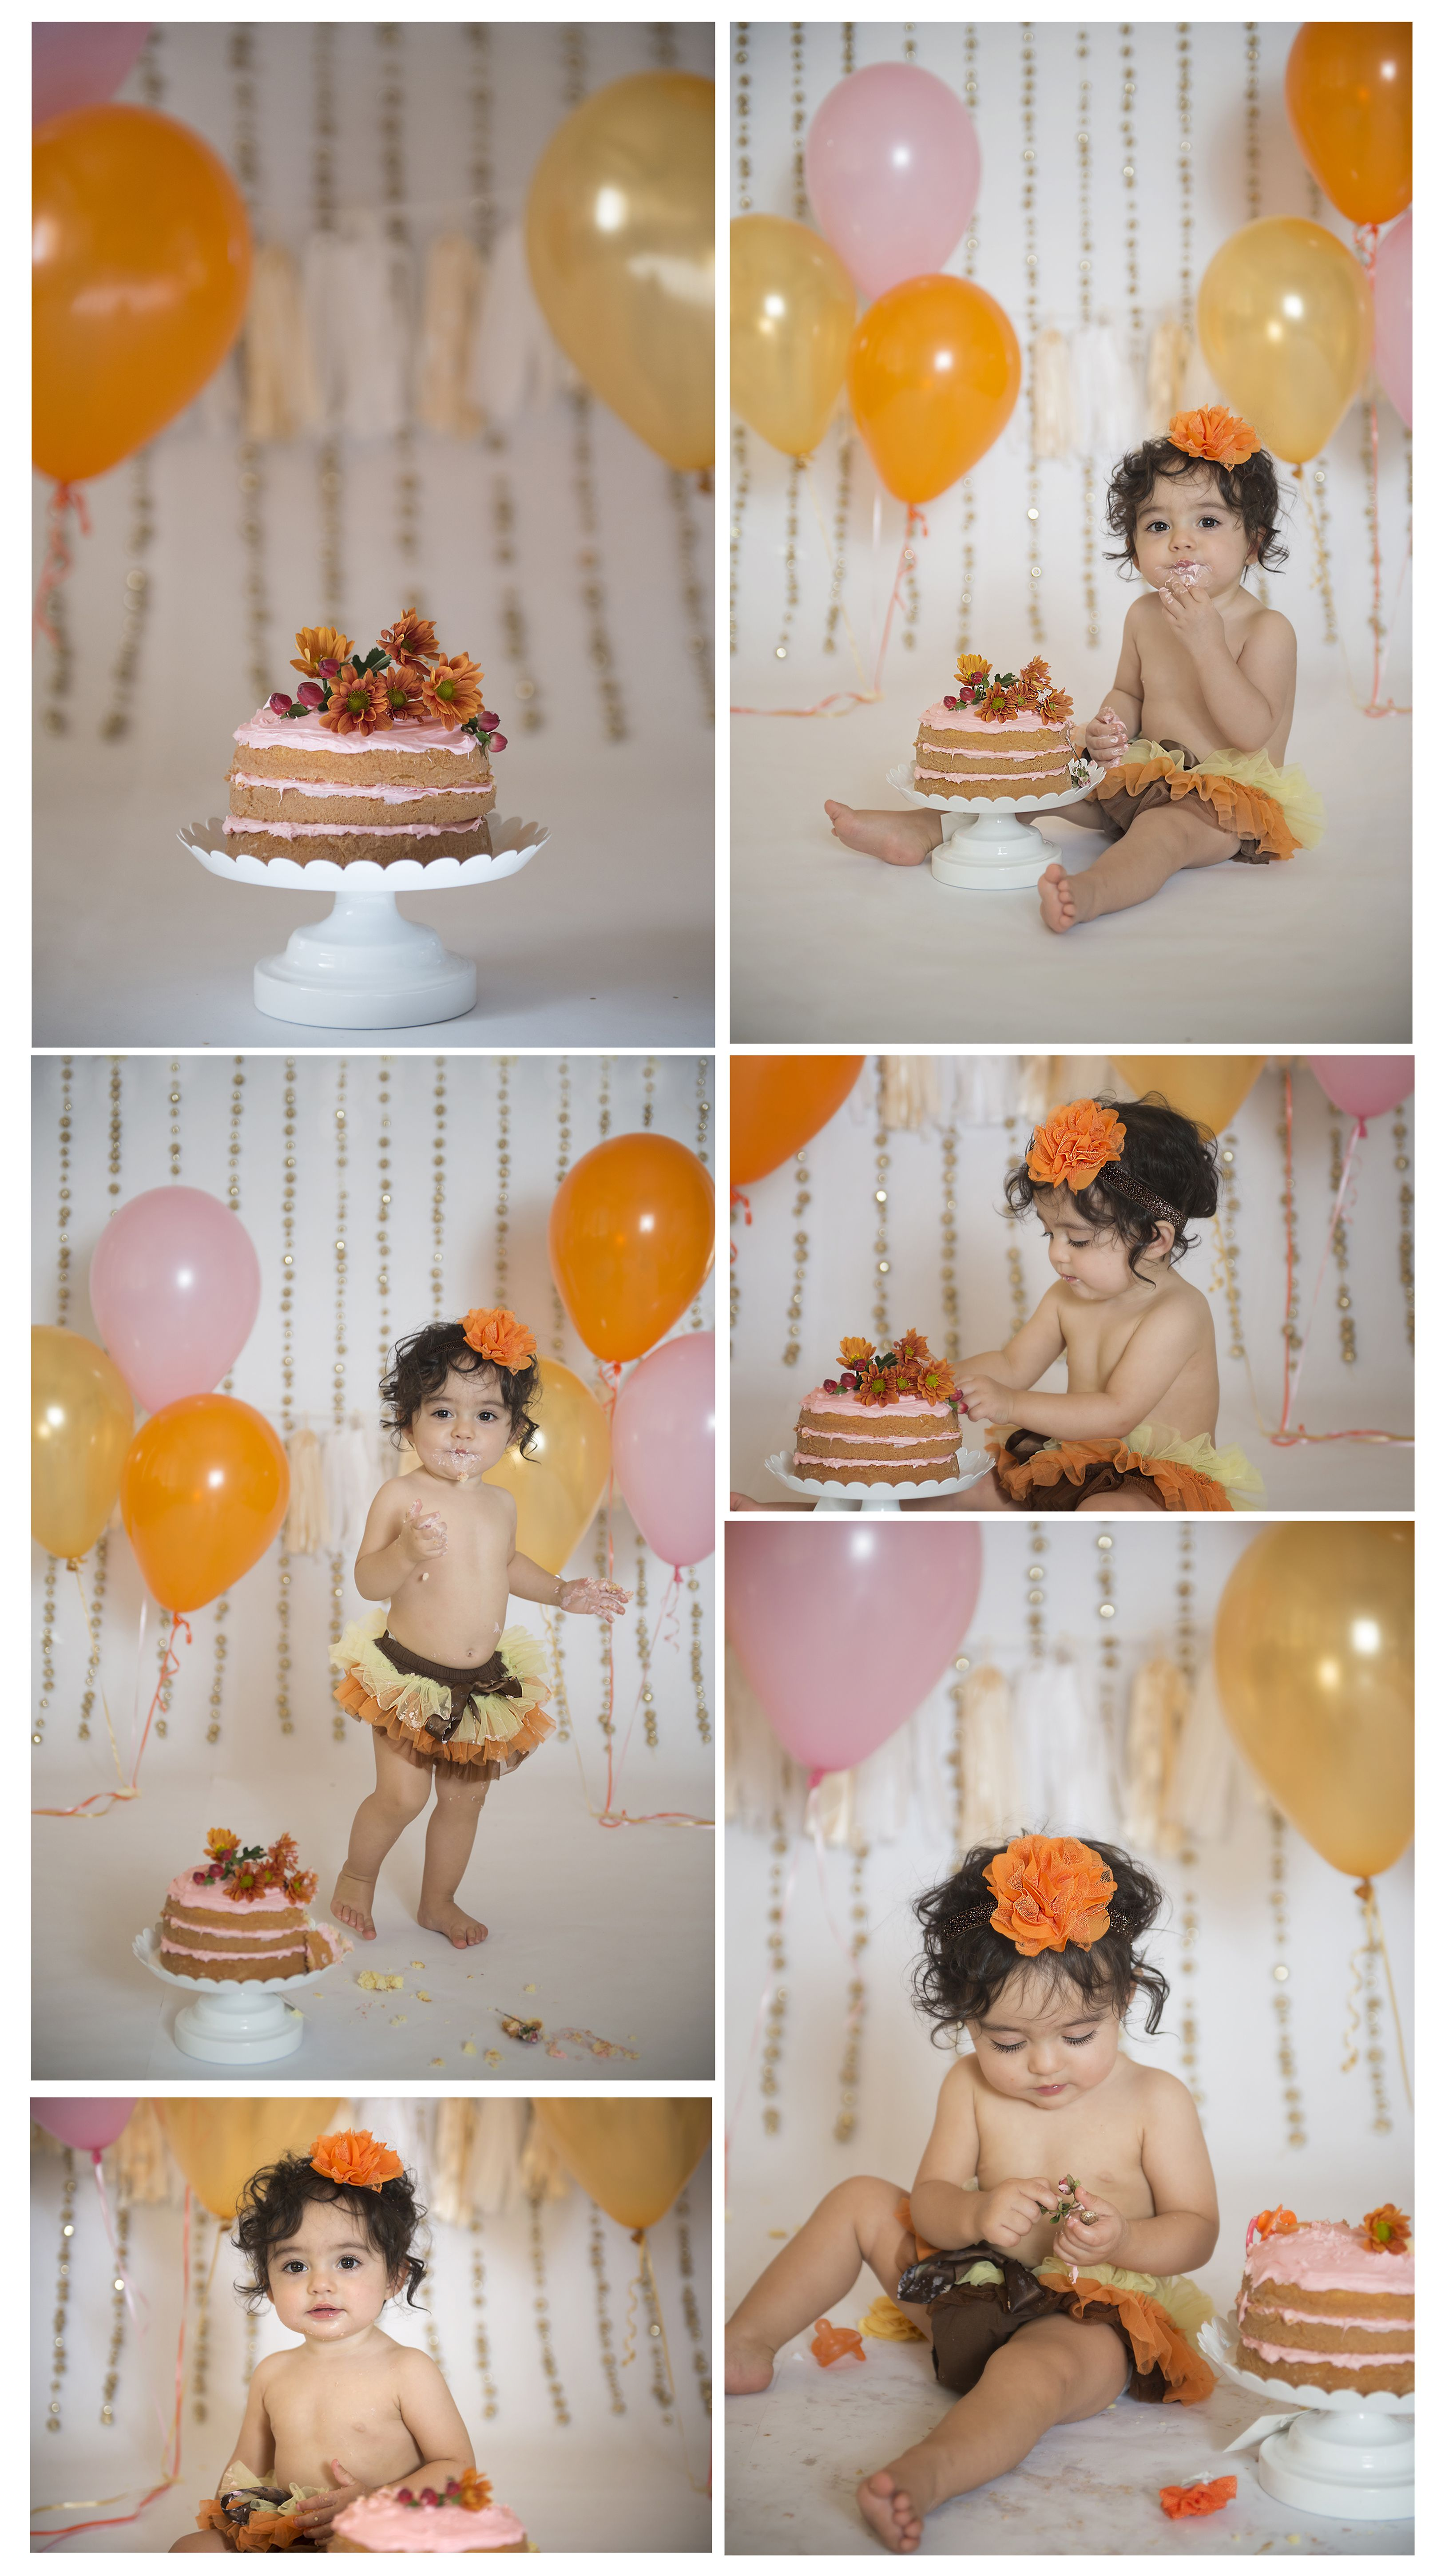 Modern Image Photography Colorado Photographer Cake Smash First Birthday Photography